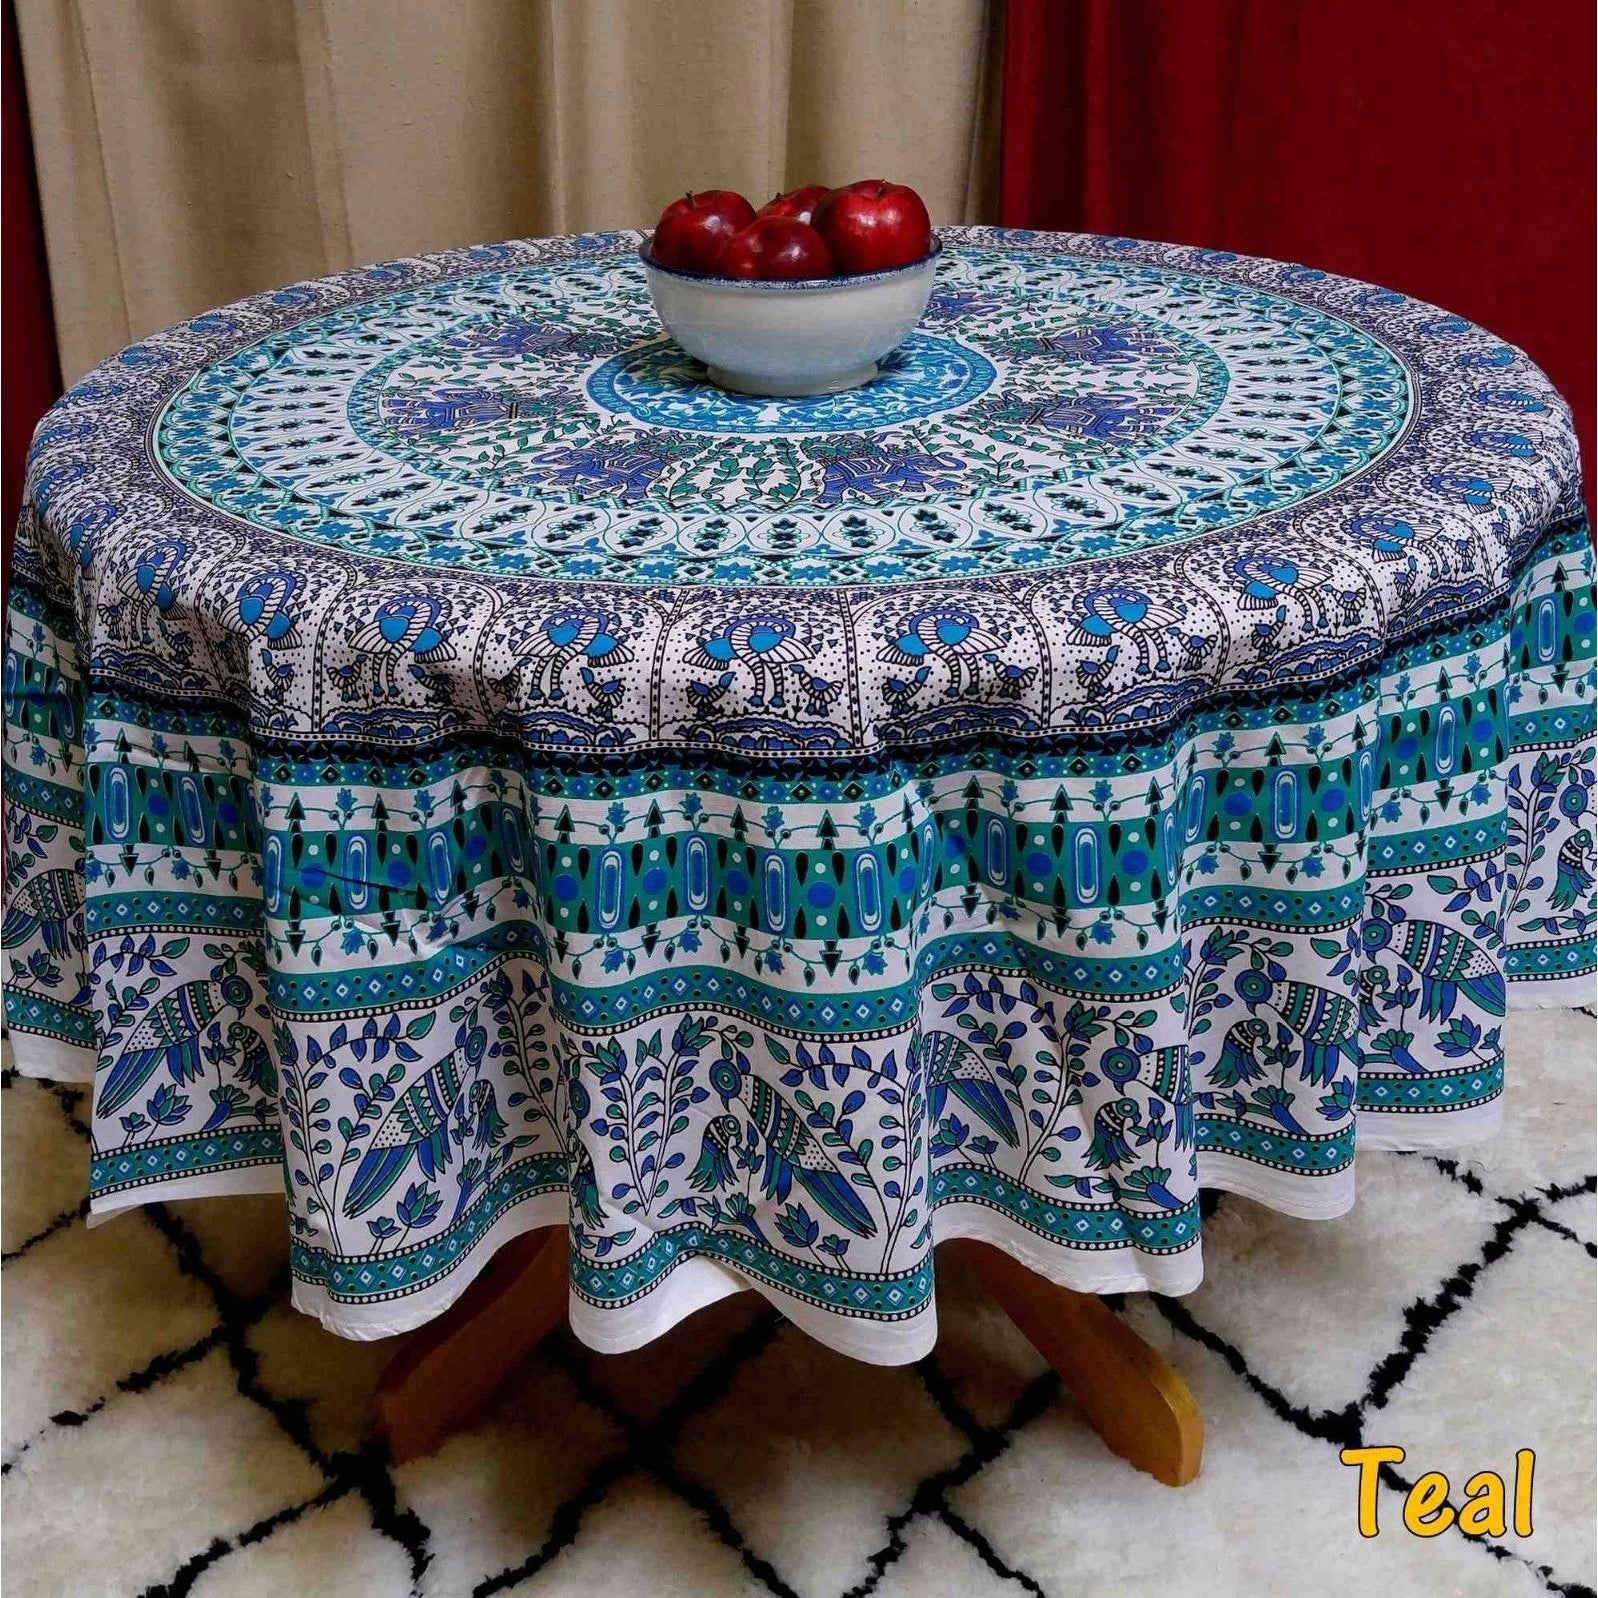 Thumbnail 11, Elephant and Peacock Print 100% Cotton Tablecloth Round 69 inches Blue Green Red Teal. Changes active main hero.